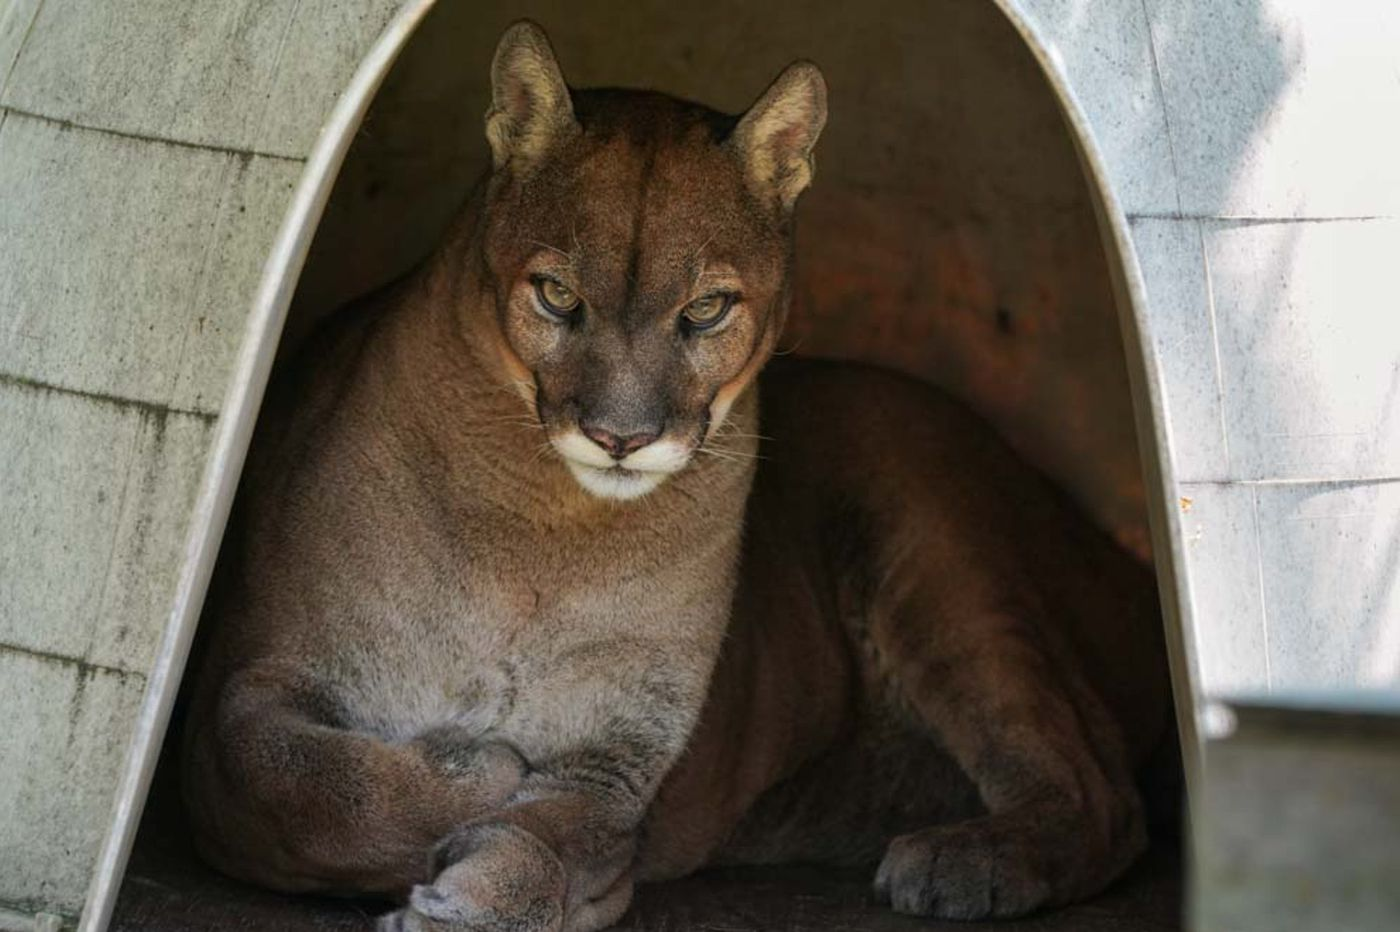 Spotting mountain lions is becoming a Pennsylvania pastime. But they're probably bobcats.